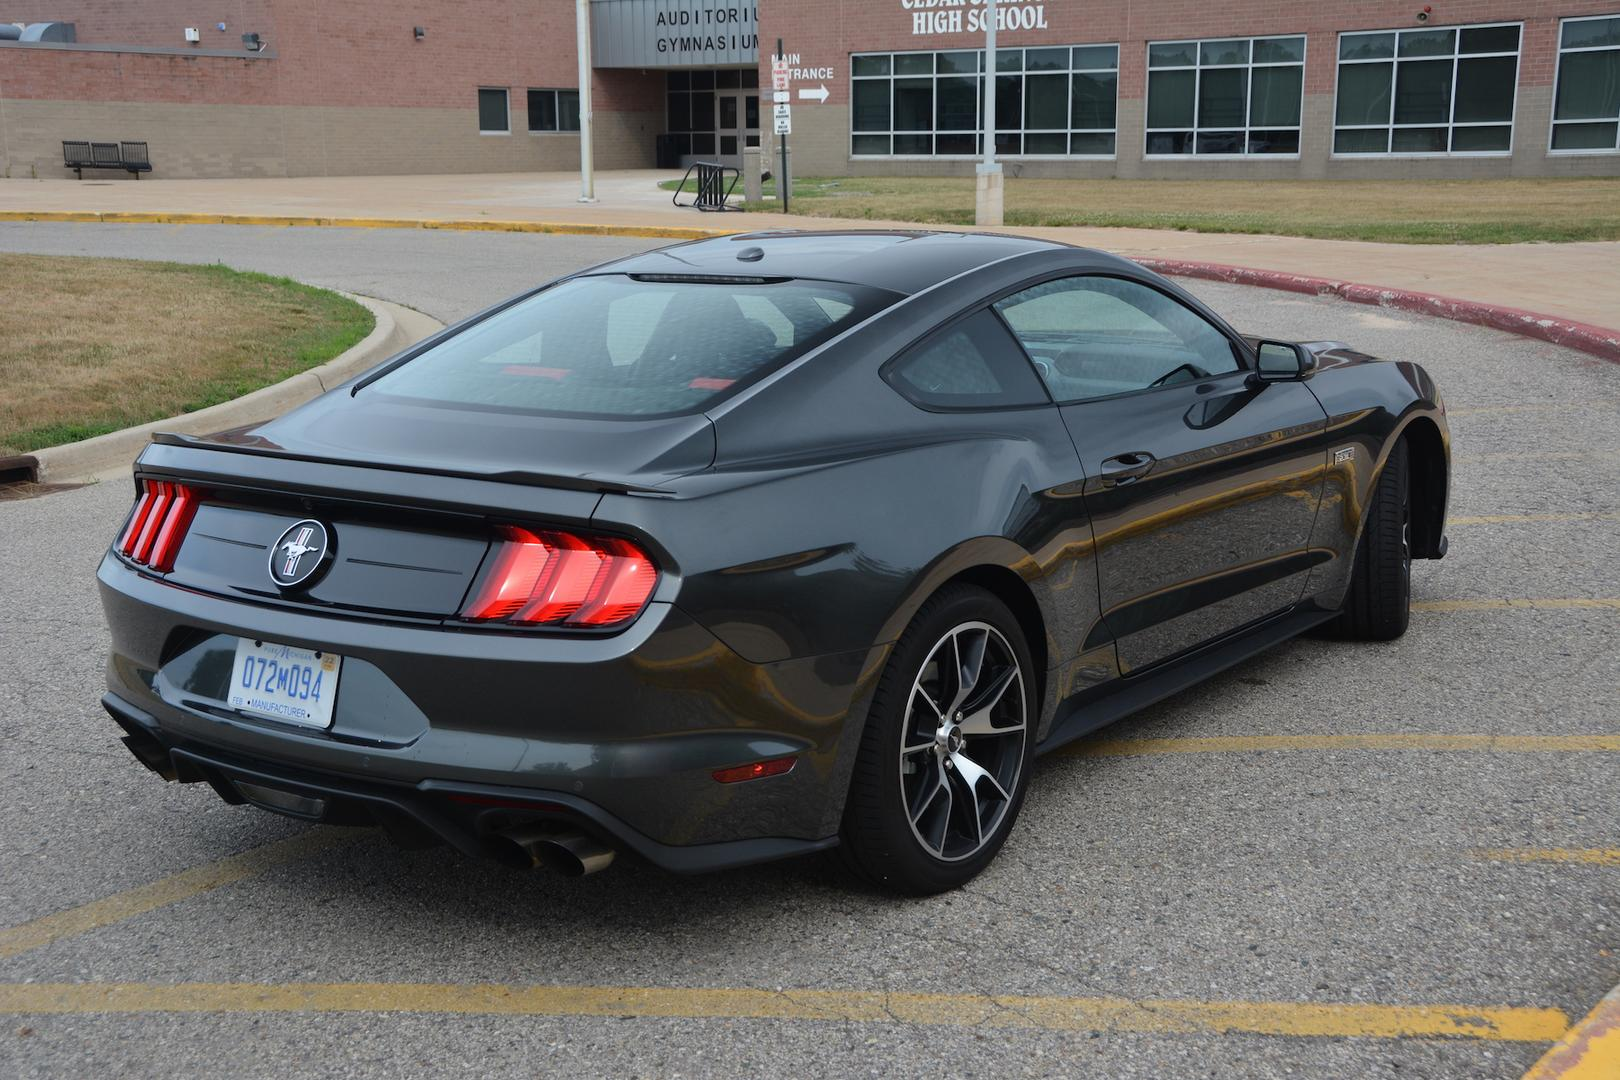 Ford Mustang EcoBoost Rear Quarter